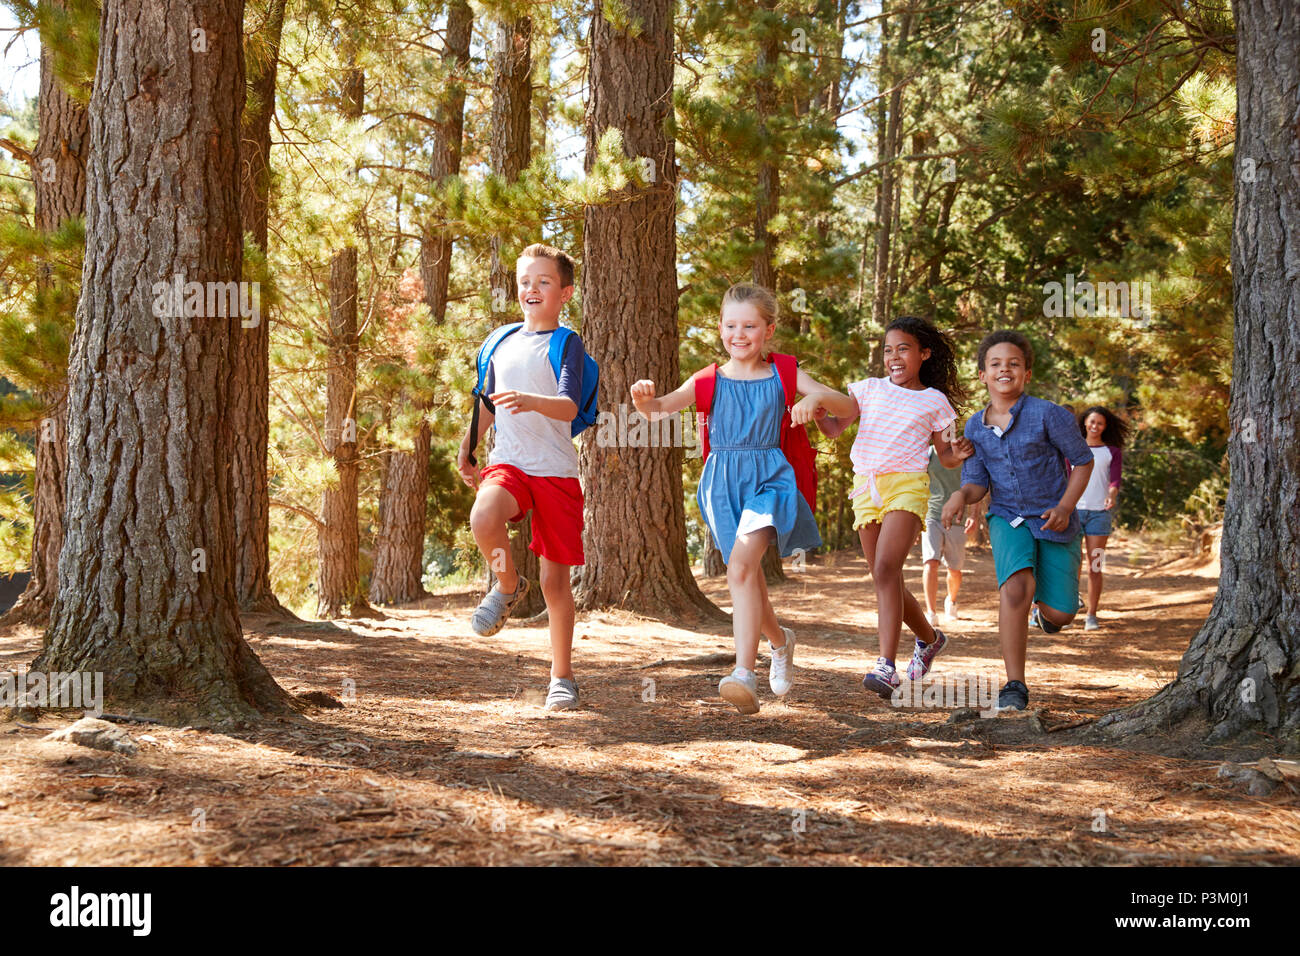 Children Running Ahead Of Parents On Family Hiking Adventure - Stock Image